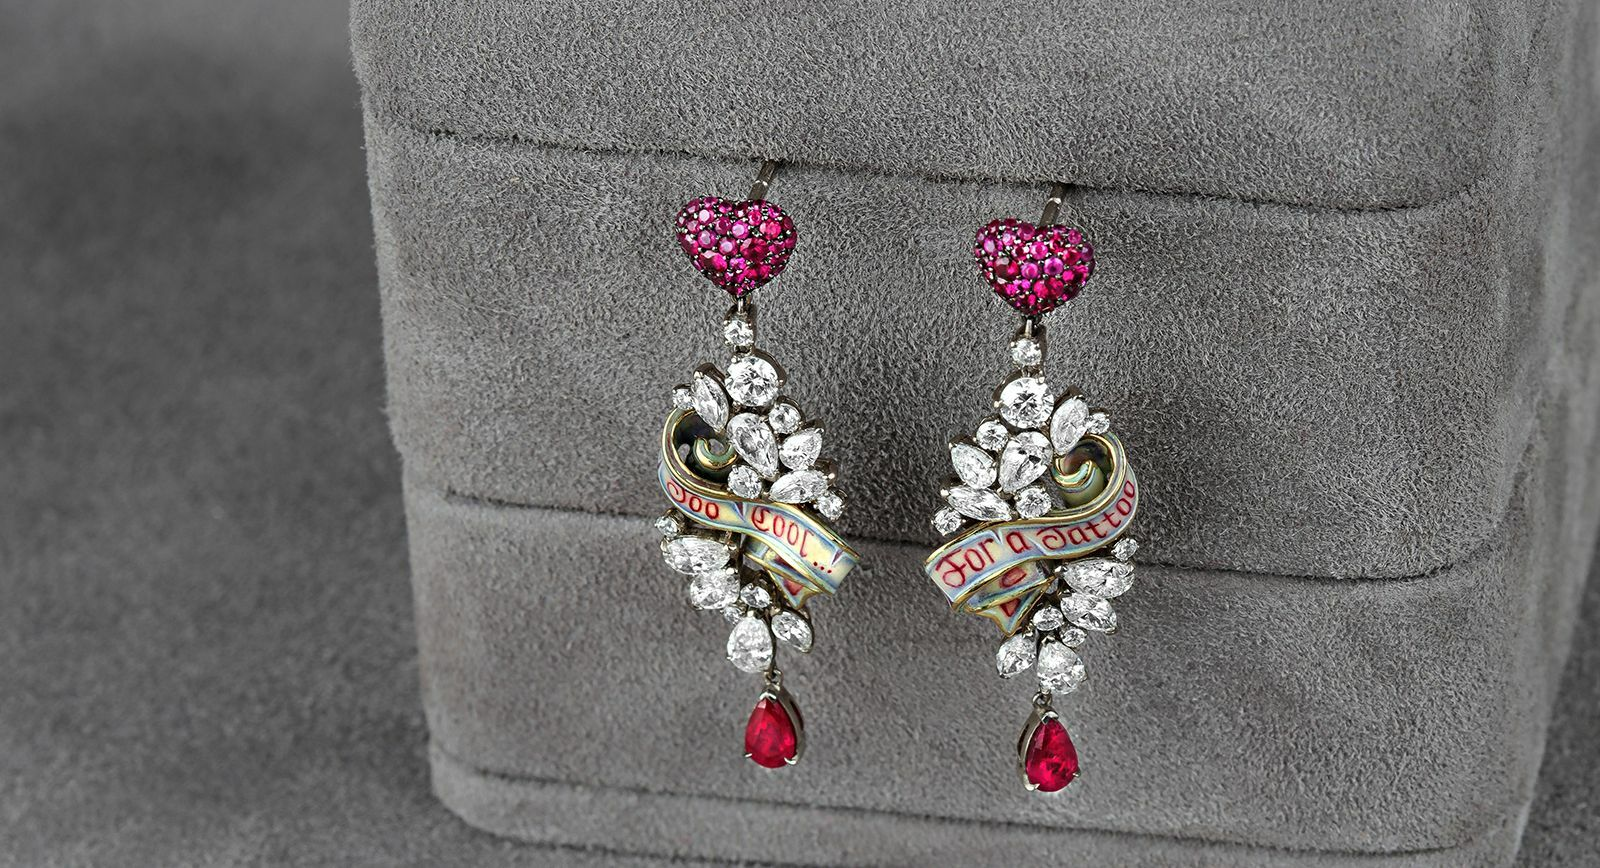 Liza Borzaya earrings with diamonds, rubies and enamel